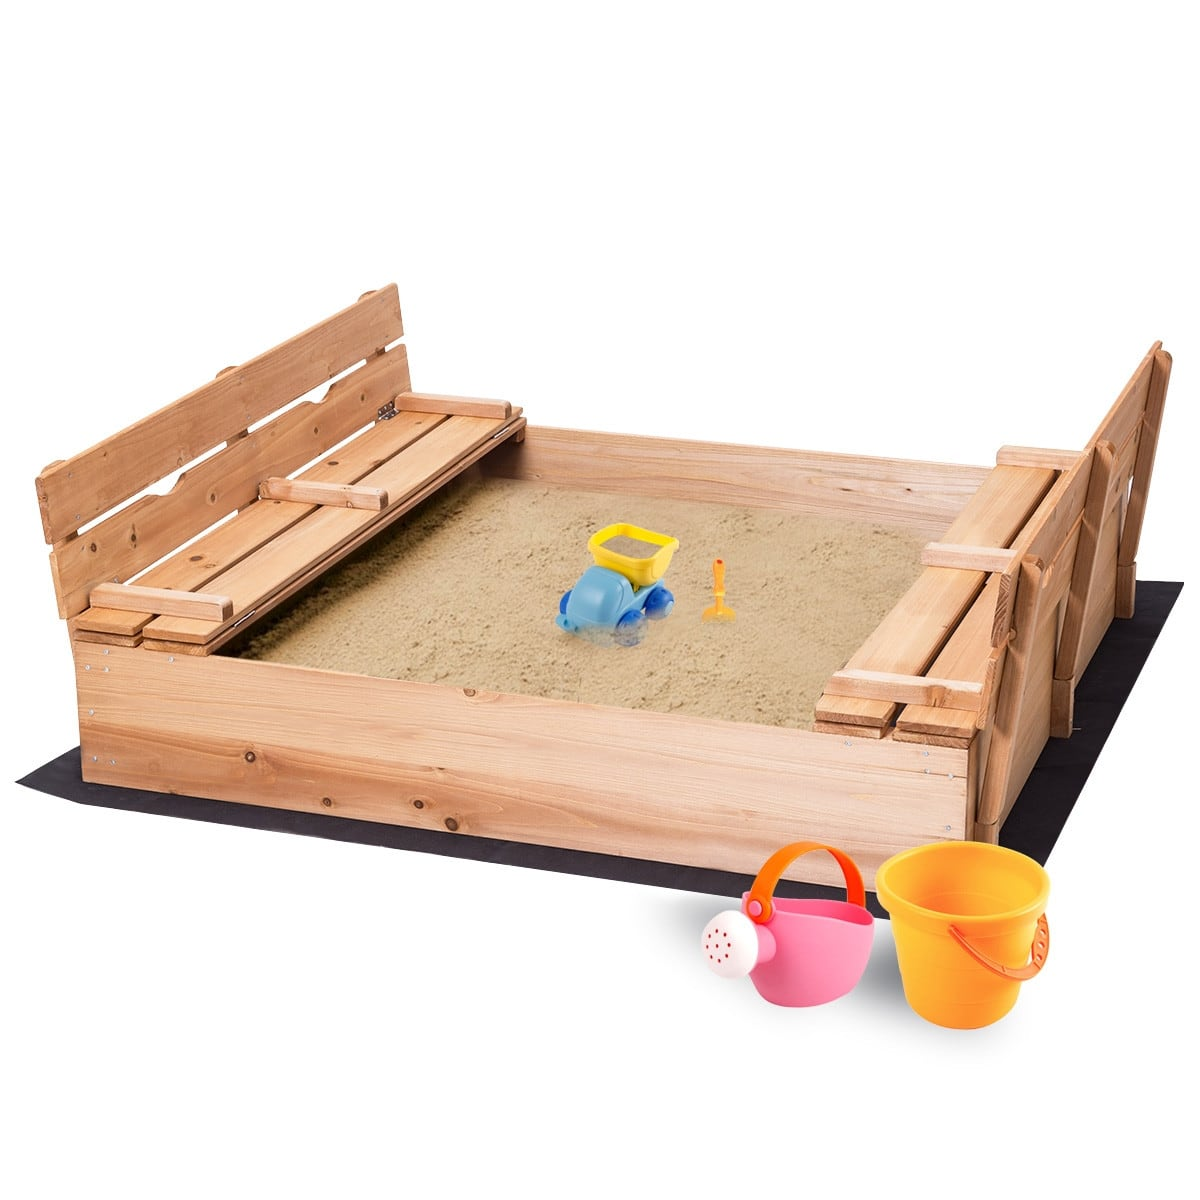 Costway Kids Outdoor Foldable Retractable Sandbox with Bench Seat-$99.95 + Free Shipping